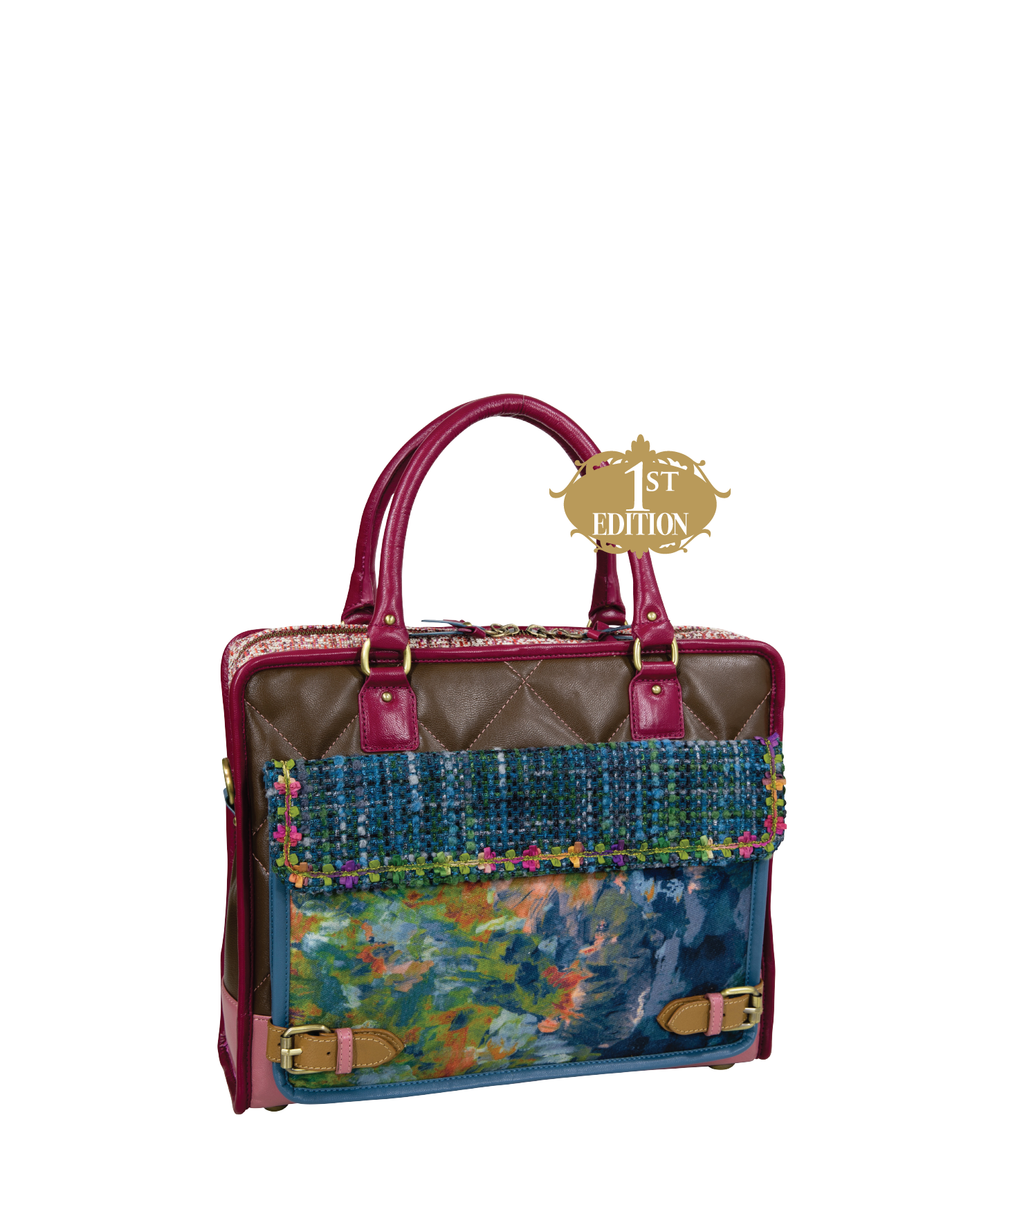 PAULETTE Work Tote - Botanical - 1st Edition